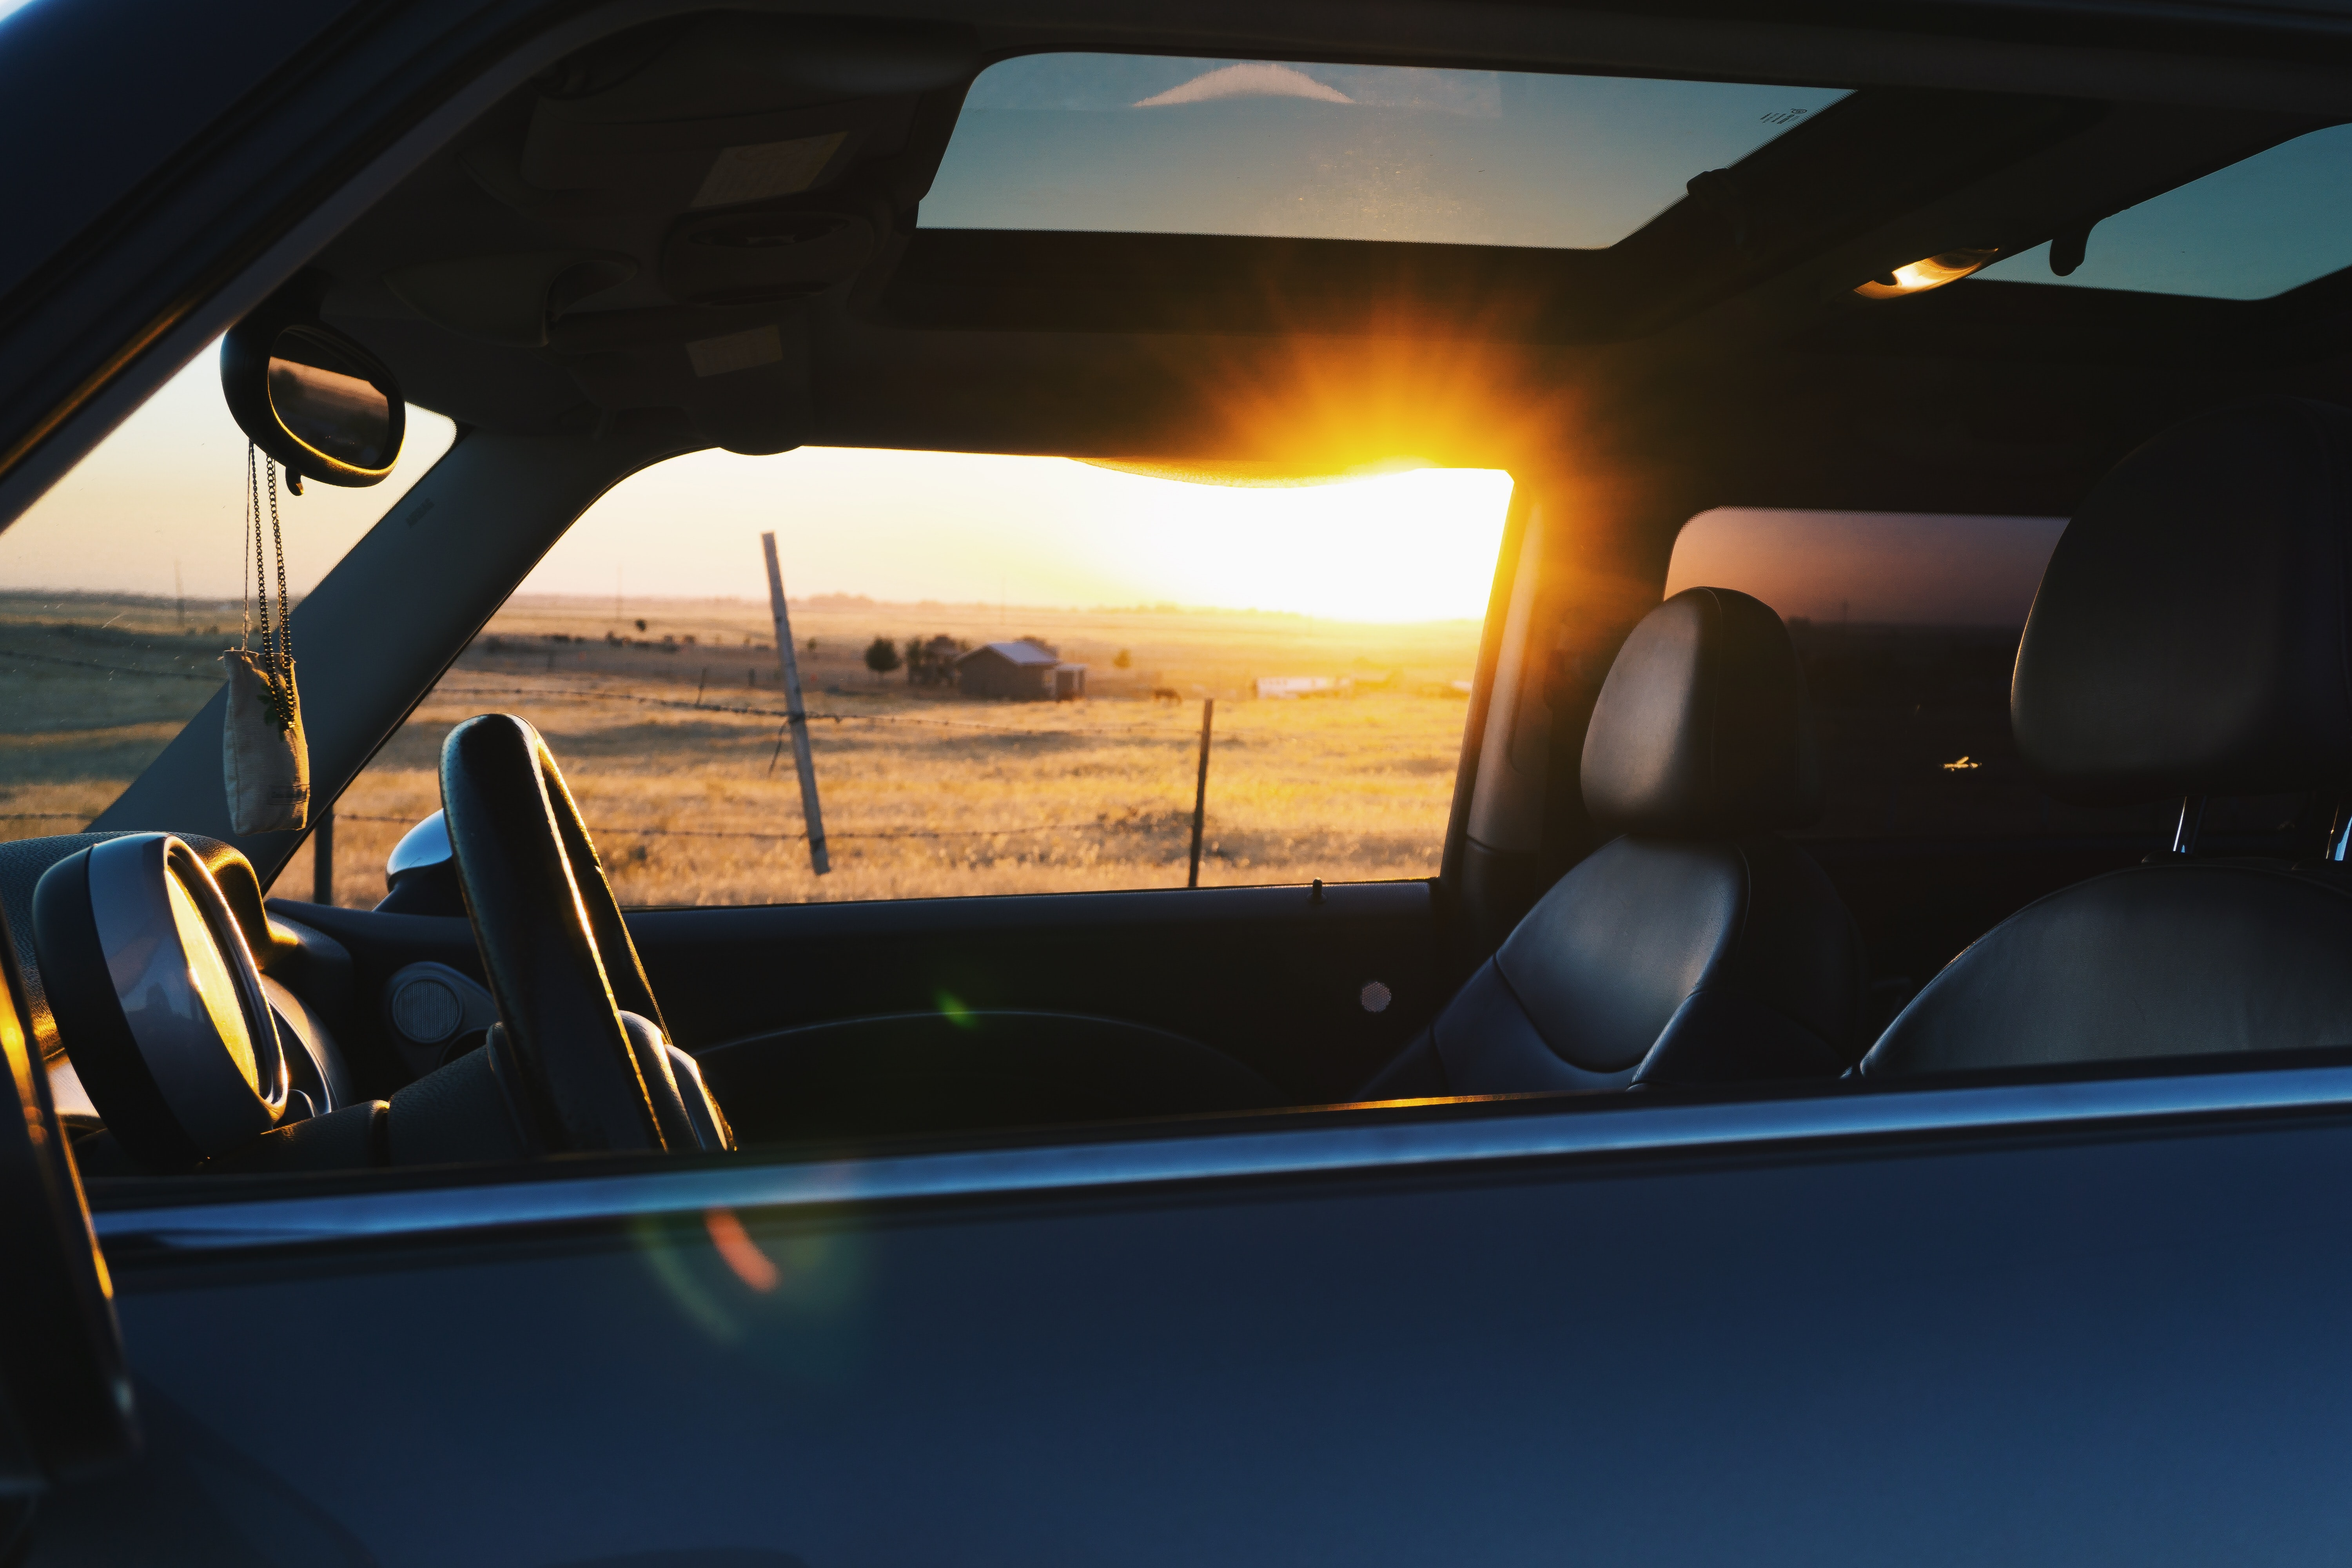 car with sunroof and sunset